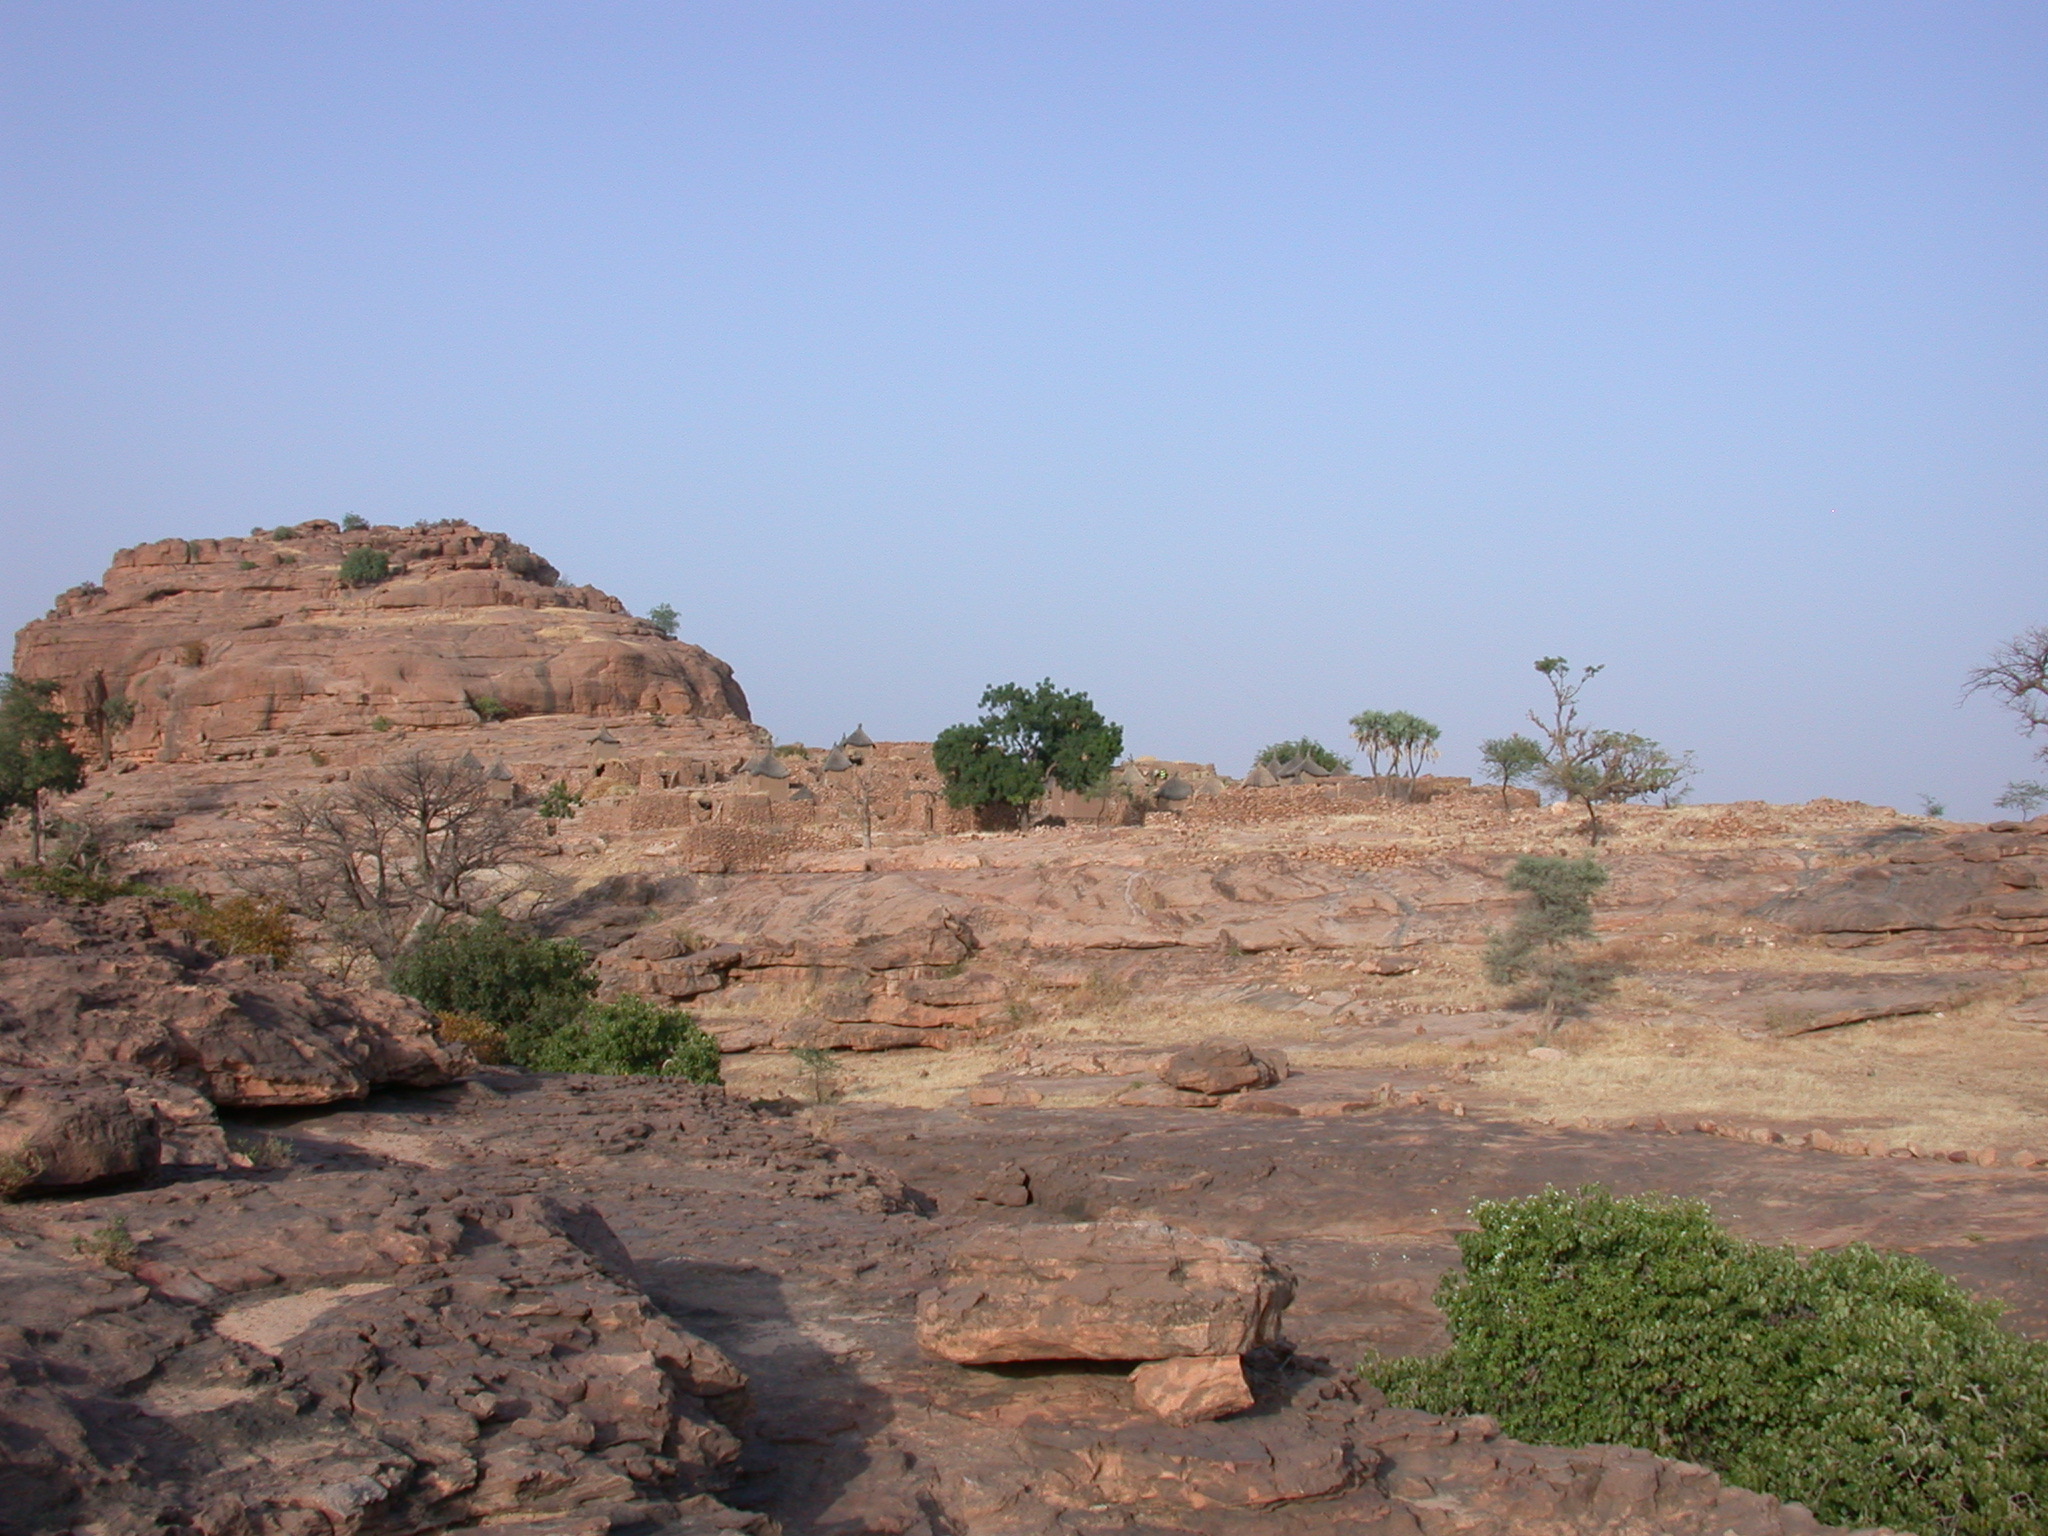 View of Summit of Falaise Escarpment Near Begnetmoto Village, Dogon Country, Mali